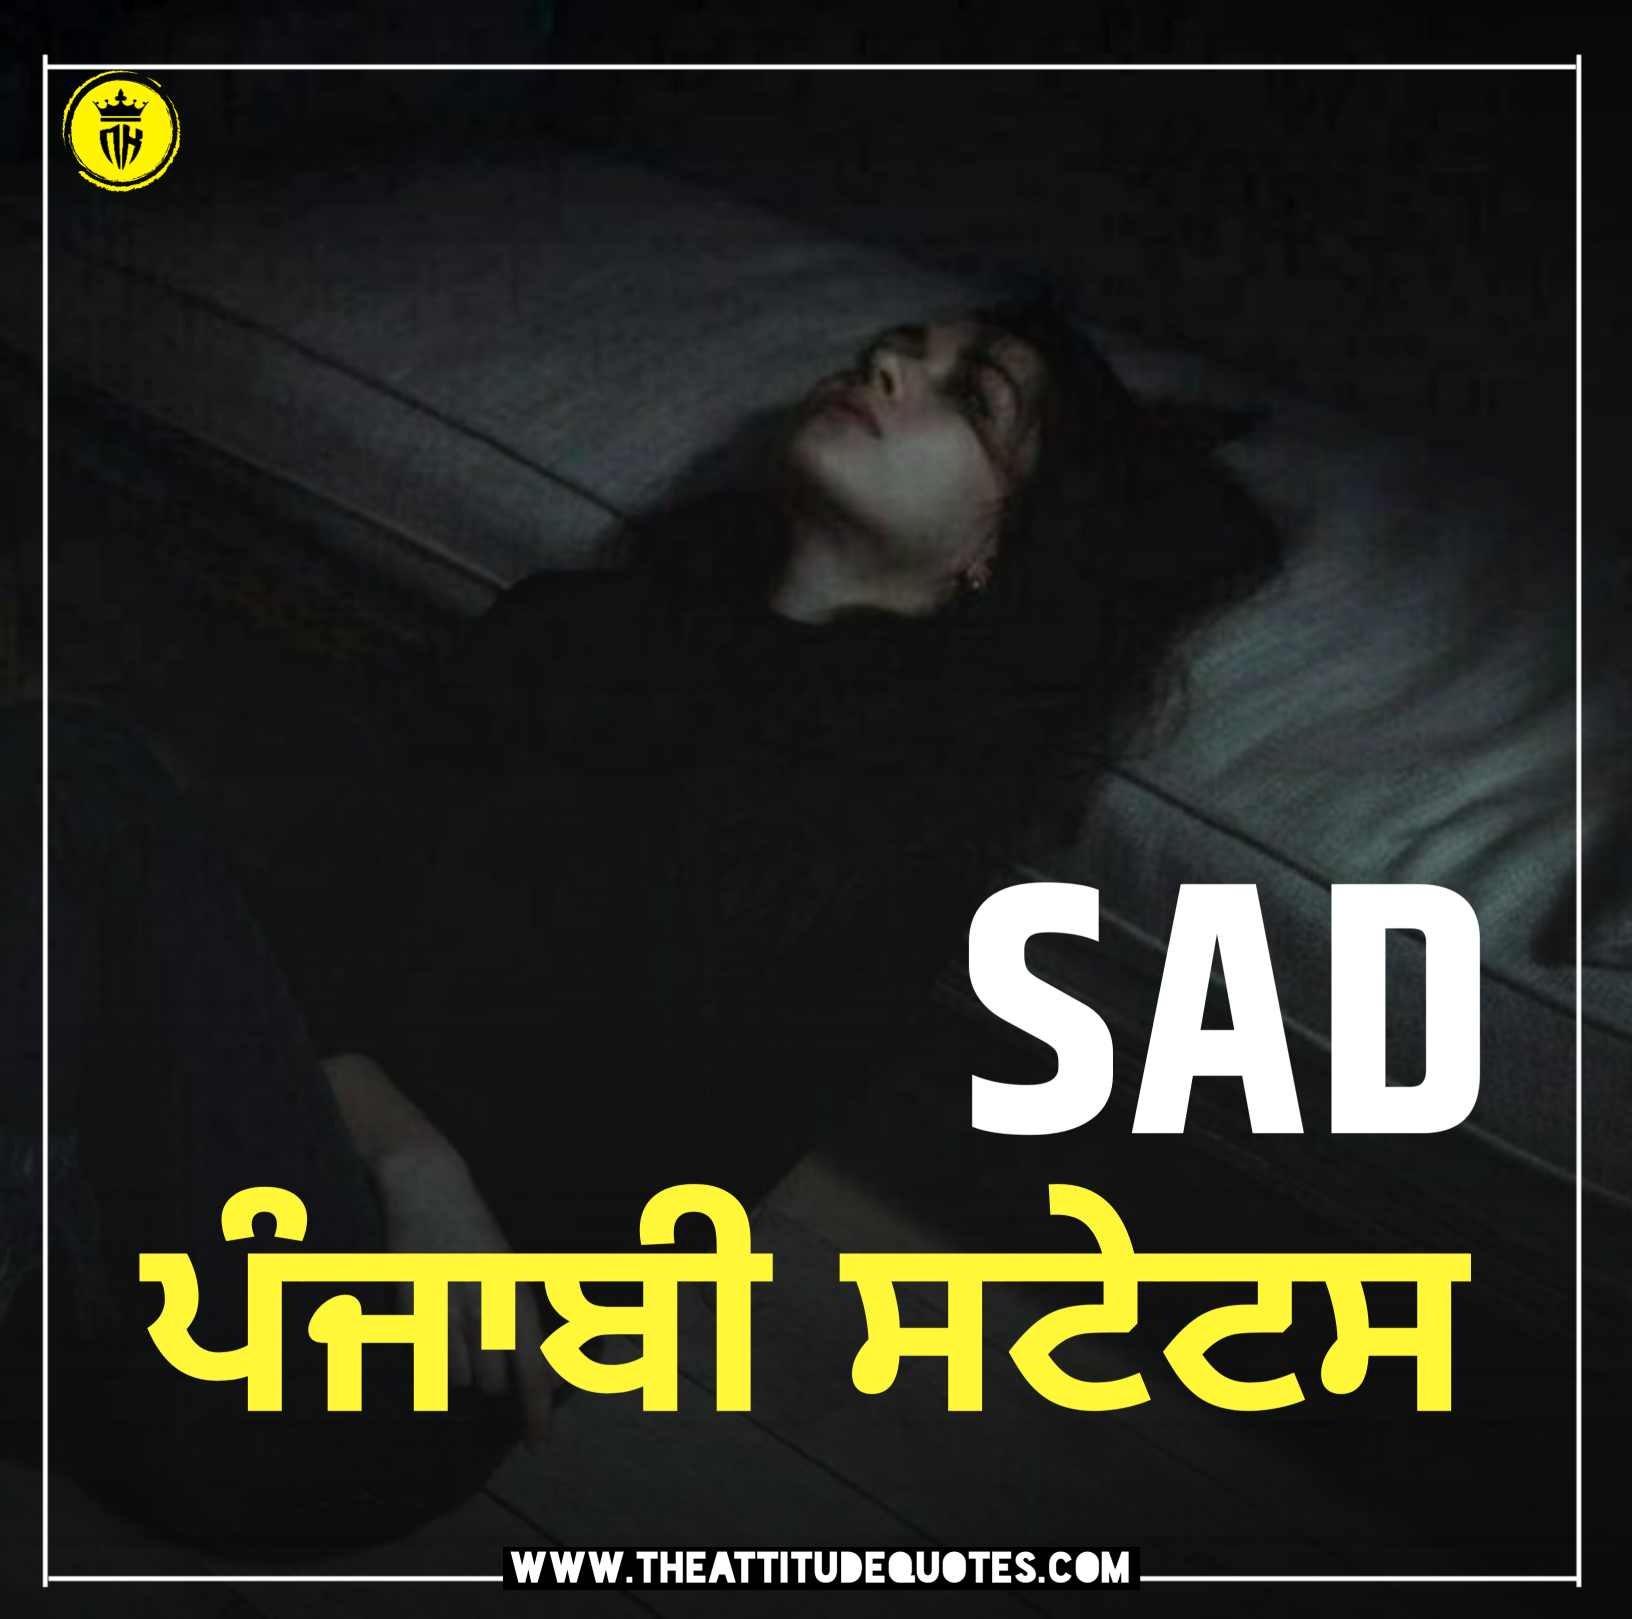 punjabi shayari , sad status punjabi, punjabi love status, sad shayari punjabi, punjabi love shayari, love quotes in punjabi, sad quotes in punjabi, punjabi romantic status, punjabi shayari attitude, punjabi romantic shayari, attitude punjabi shayari, punjabi shayari on life , Punjabi attitude shayari, punjabi shayari for friends, punjabi status for instagram, punjabi status sad love, punjabi love status in two lines, romantic love quotes in punjabi, punjabi sad status video download, punjabi sad song status , love lines in punjabi, romantic quotes in punjabi, punjabi sad song status for whatsapp download, punjabi sad status 2 lines, punjabi shayari lyrics in punjabi, punjabi love shayari in punjabi, love shayari in punjabi for girlfriend, punjabi sad shayari on life, sad lines in punjabi , Status punjabi download, heart touching punjabi shayari in punjabi language, punjabi motivational shayari, heart touching lines in punjabi, new punjabi shayari, punjabi couple status, punjabi shayari attitude boy, quotes on love in punjabi, new punjabi whatsapp status, punjabi status love lines, punjabi sad shayari in punjabi, punjabi whatsapp song, punjabi sad status download, sad status punjabi video, punjabi love status in hindi, whatsapp status punjabi song download, mirchi status punjabi, status video download punjabi song, punjabi sad song status download, sad punjabi status download, sad status download punjabi